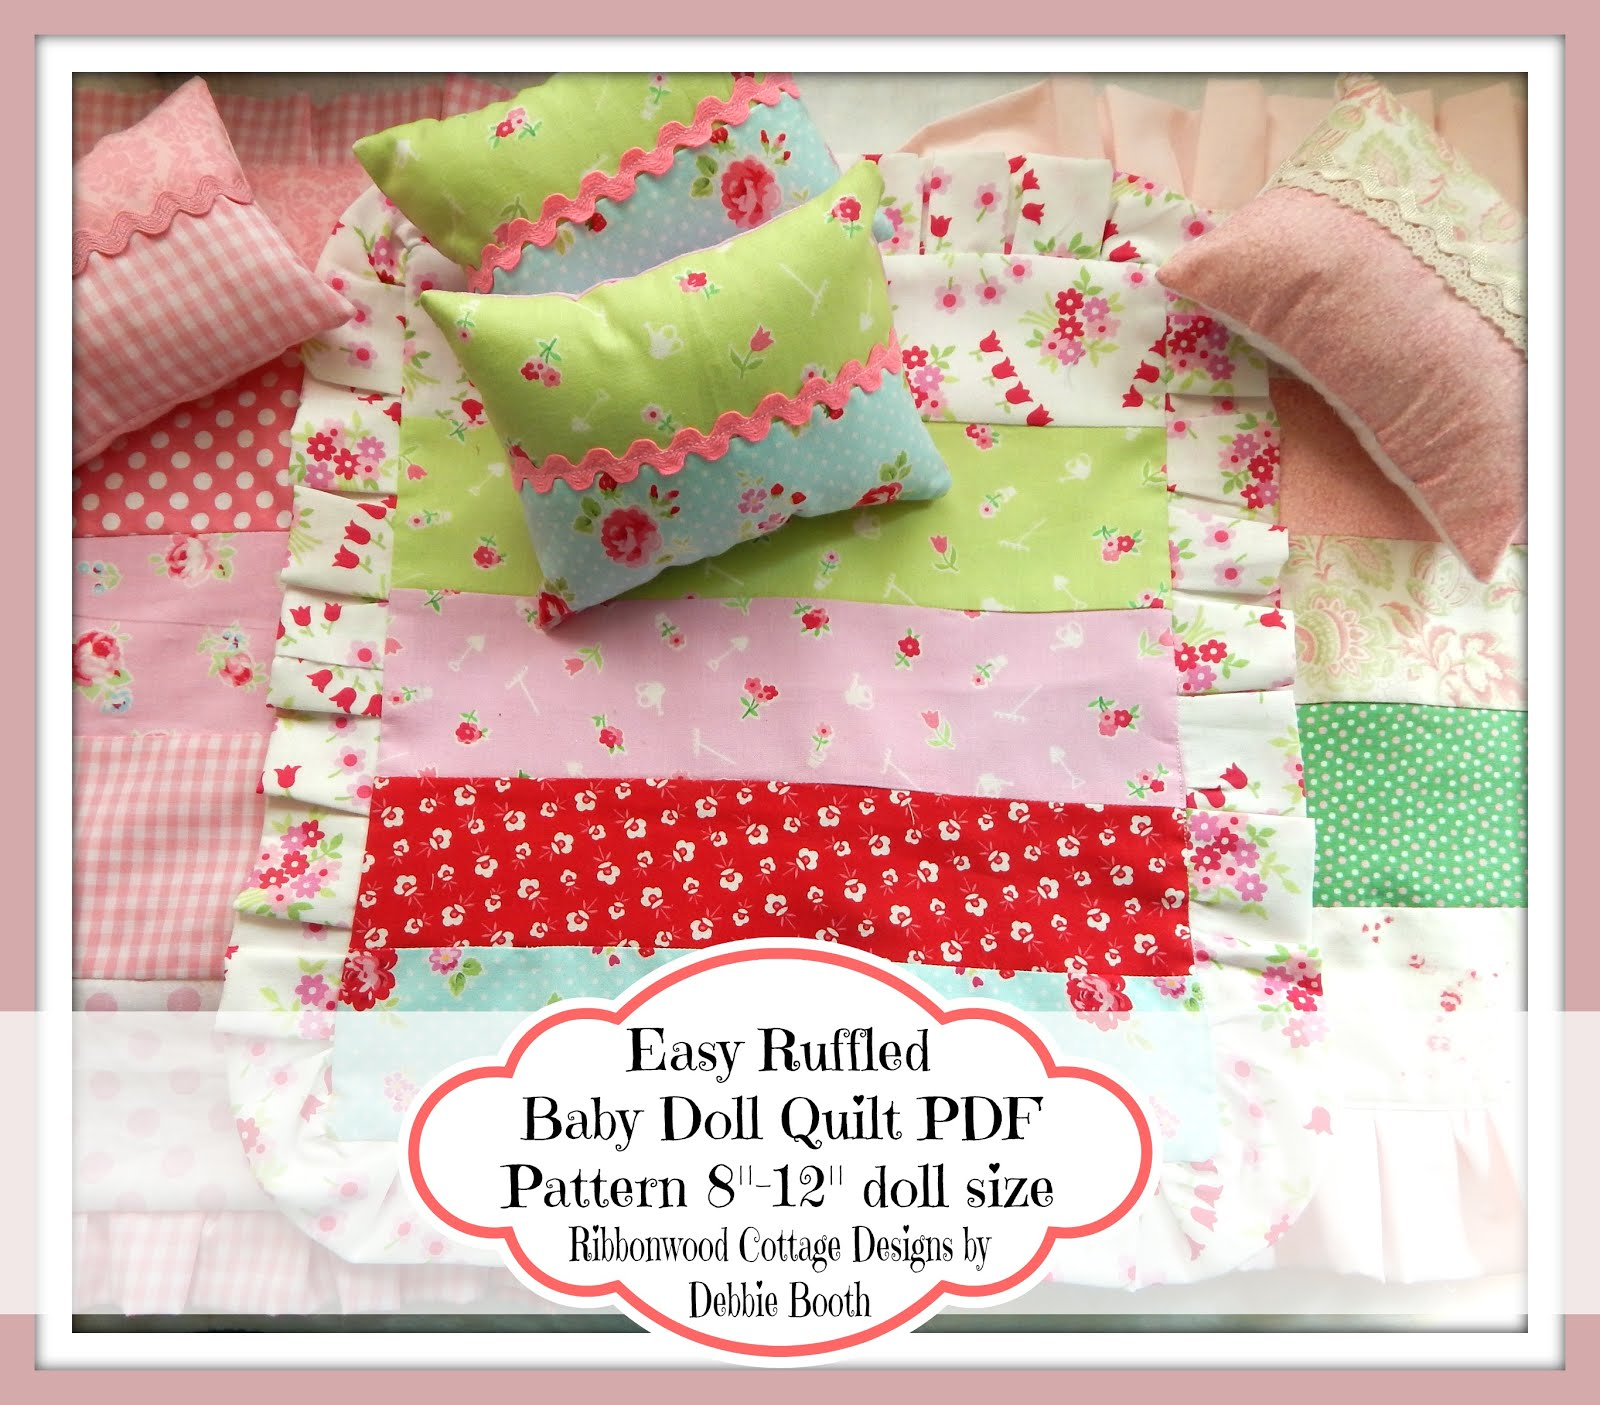 Easy Ruffled Baby Doll Quilt PDF Pattern